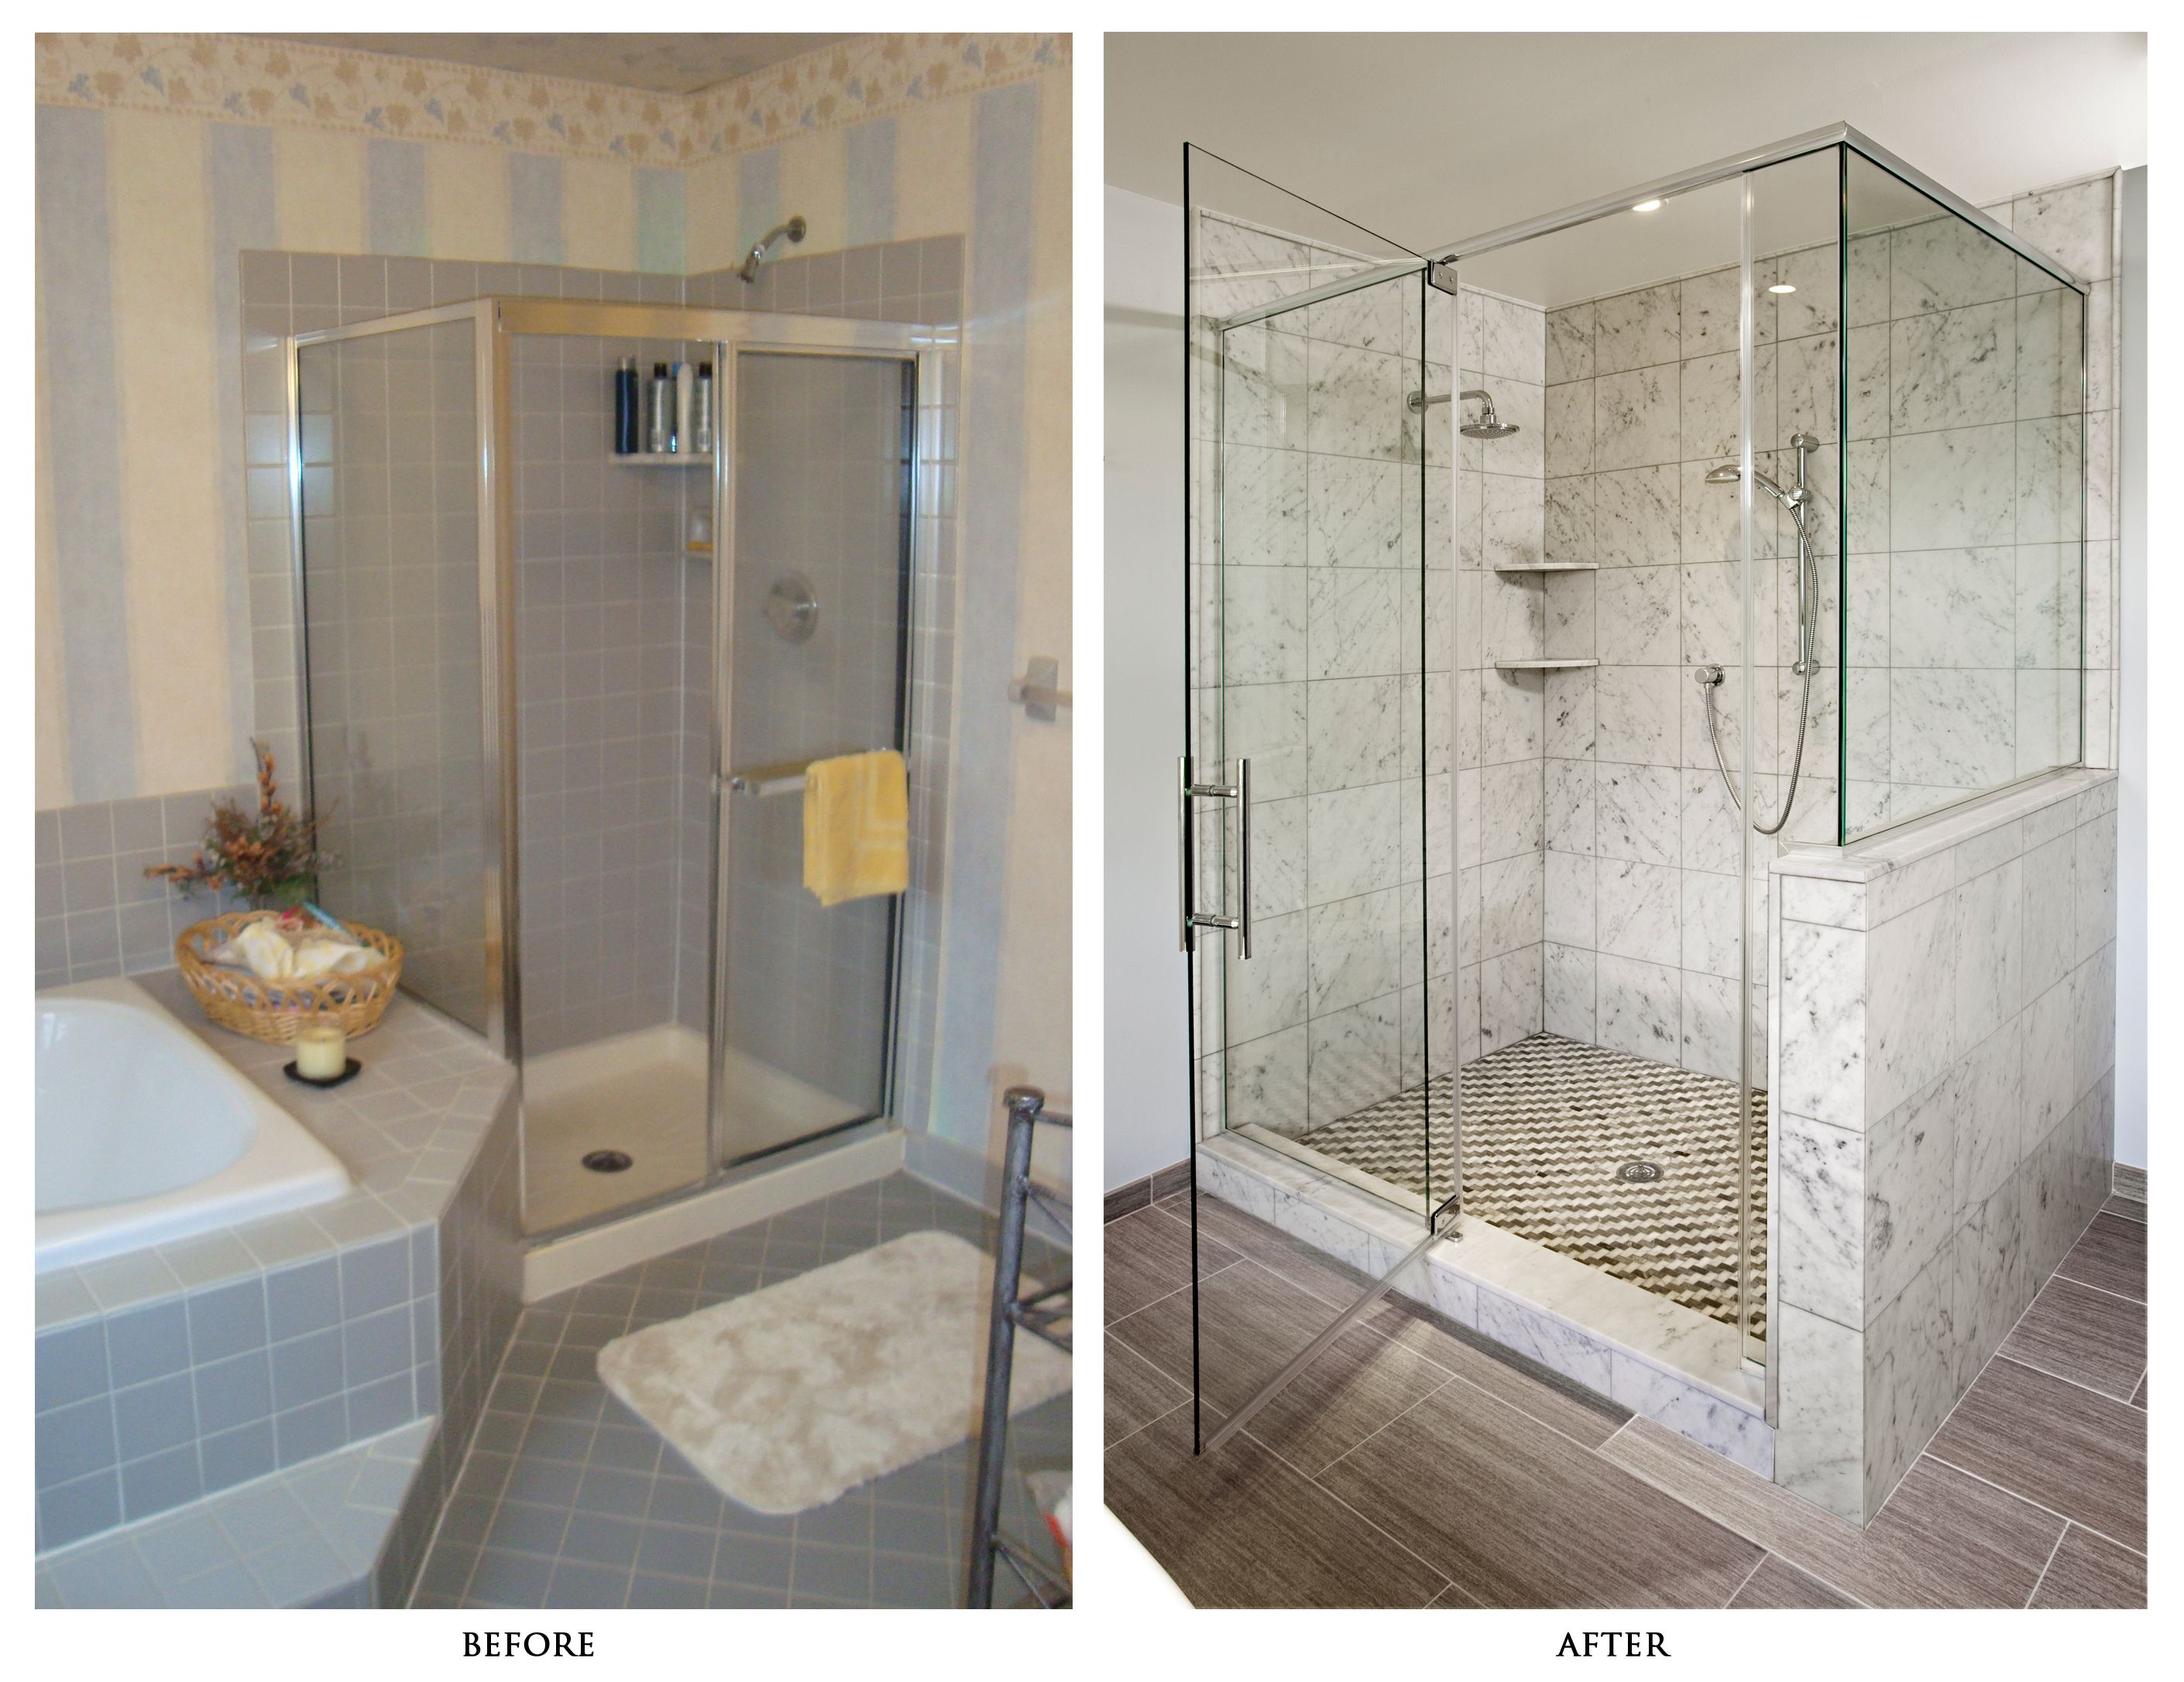 The Art Gallery Bath remodel before after ideas The bathroom is the smallest room in the apartment but requires the most time in planning and working on it when it es